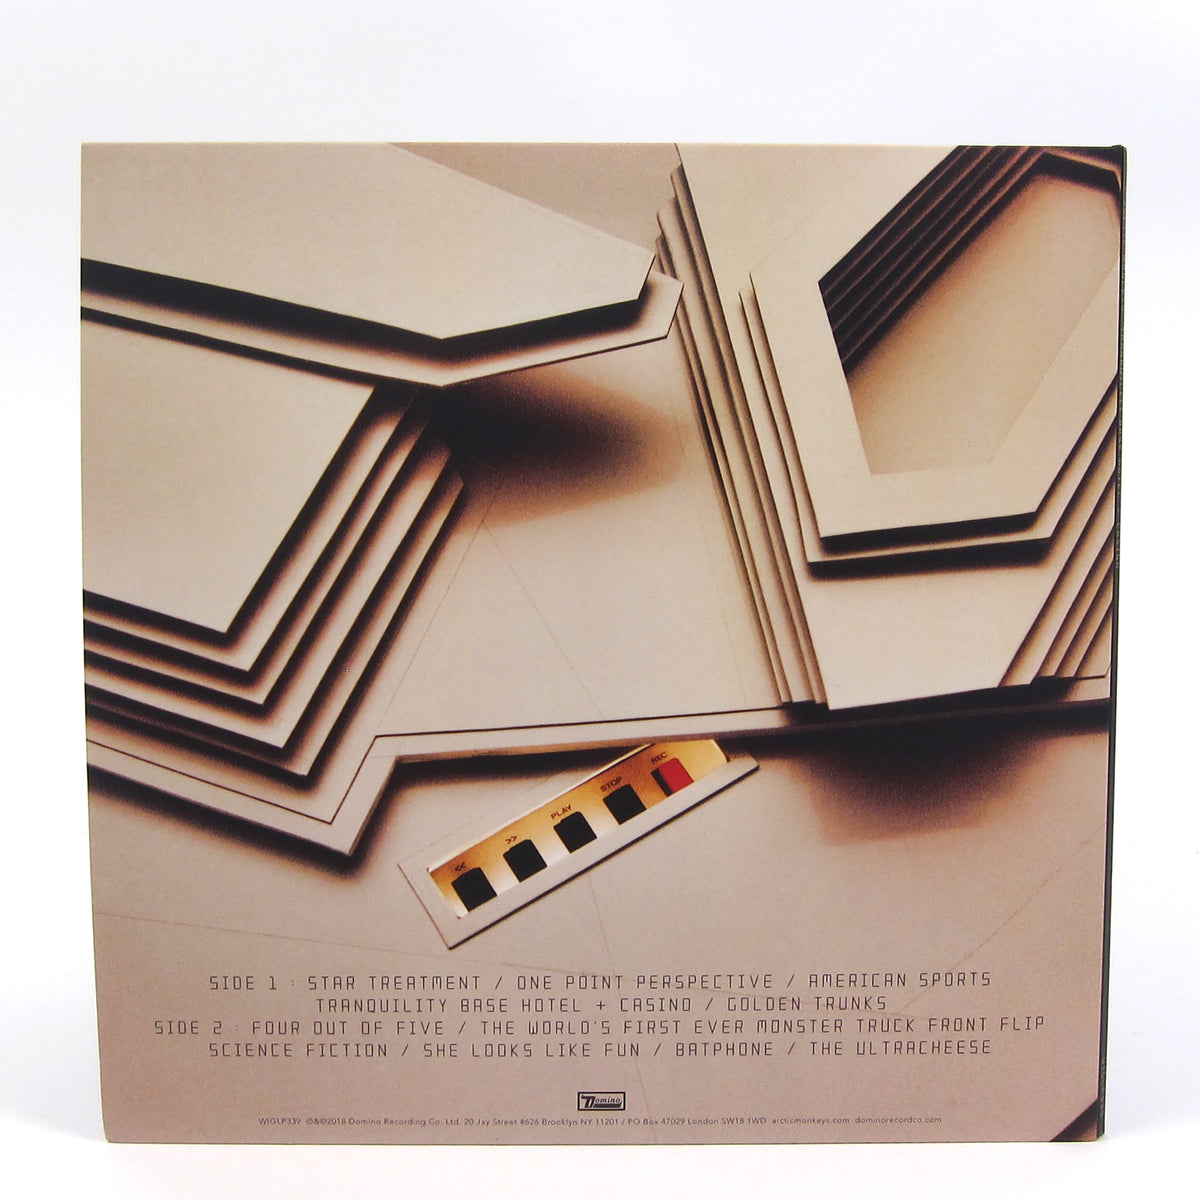 Arctic Monkeys: Tranquility Base Hotel + Casino (Indie Exclusive 180g, Colored Vinyl) Vinyl LP